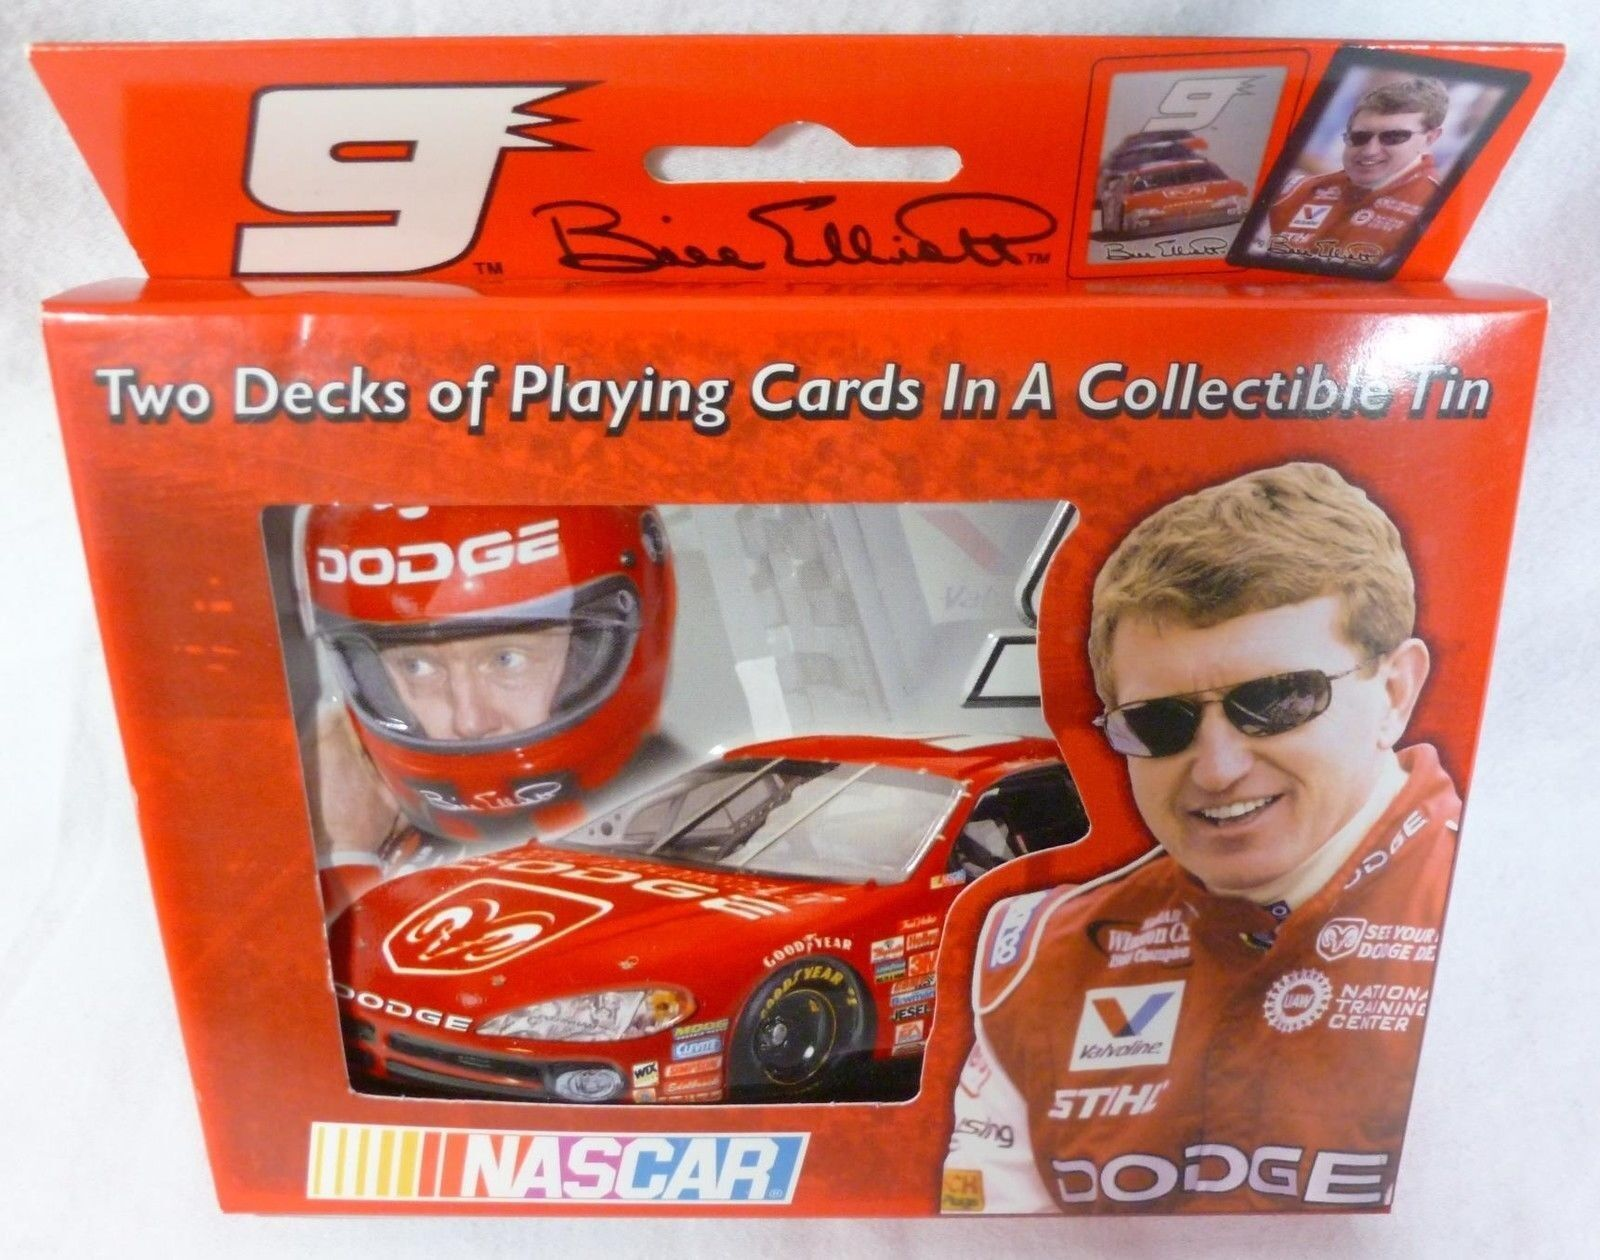 Bill Elliott NASCAR Playing Cards (2 decks) in Collectable Tin (2002), NIB - $5.99